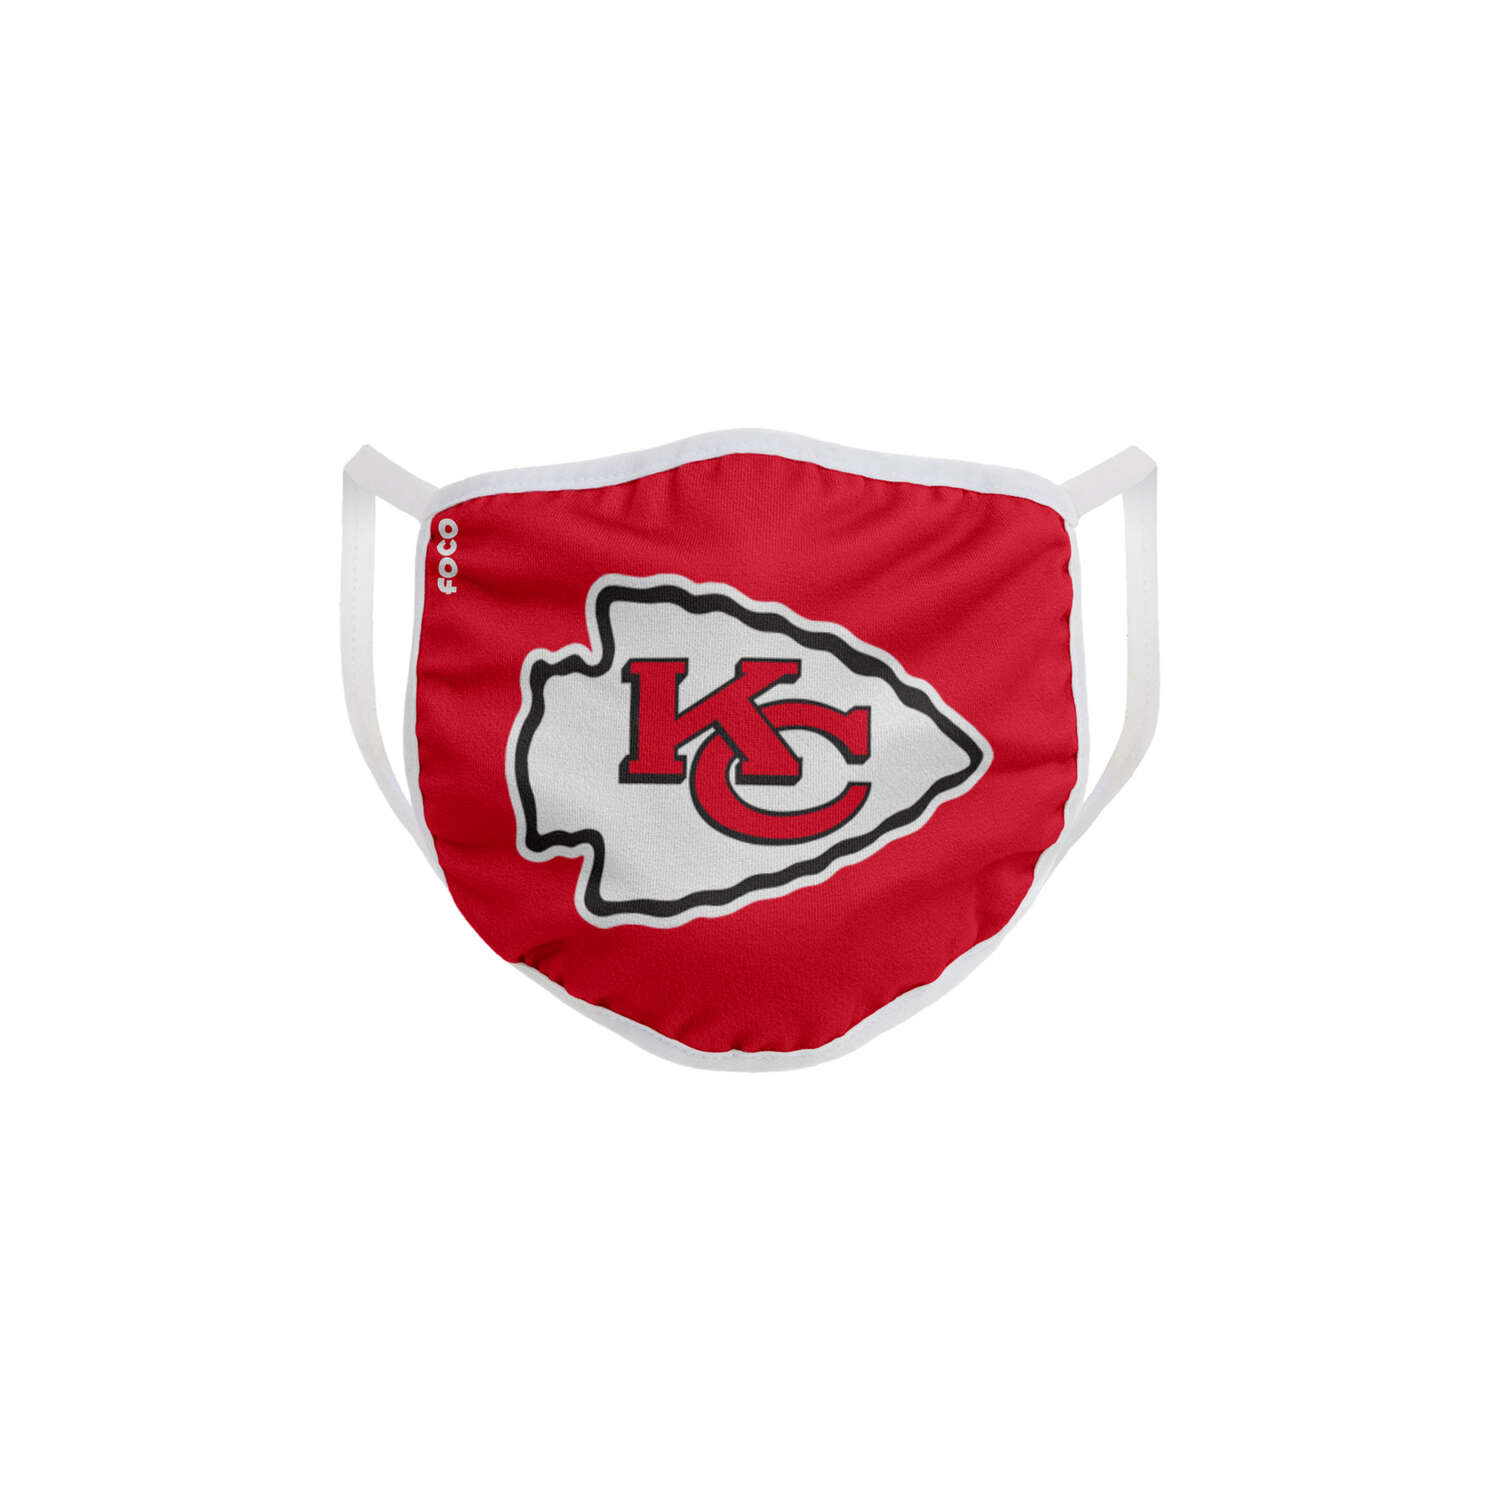 FOCO  Household Multi-Purpose  Kansas City Chiefs  Face Mask  Multicolored  1 pk